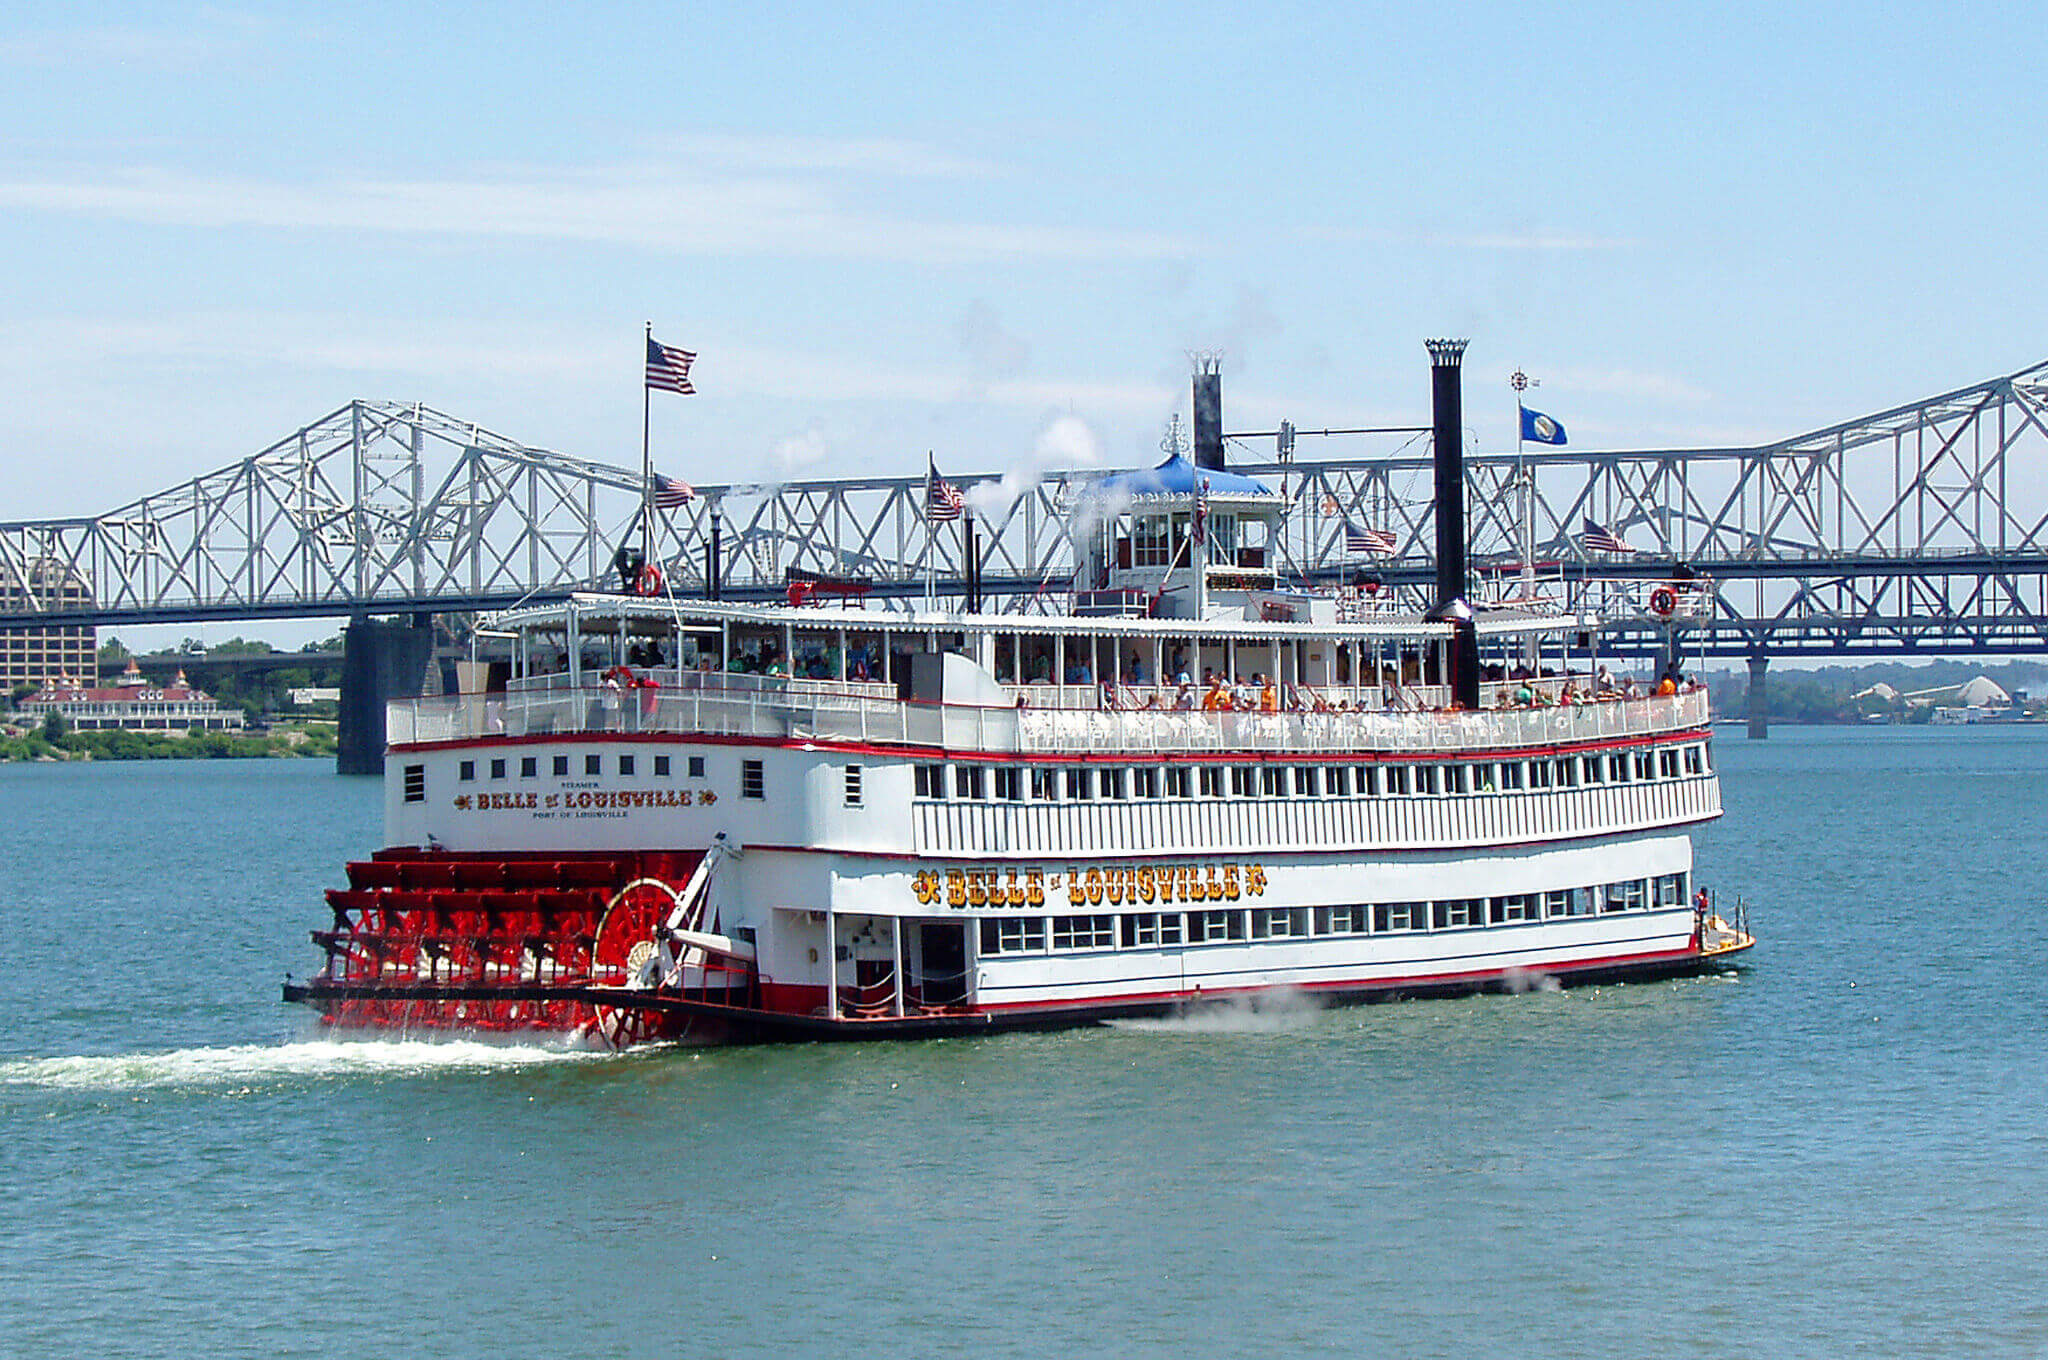 Belle of Louisville - Date: October 27, 2019Time: 12:15-2:30pmLocation: Belle of Louisville, Downtown Louisville